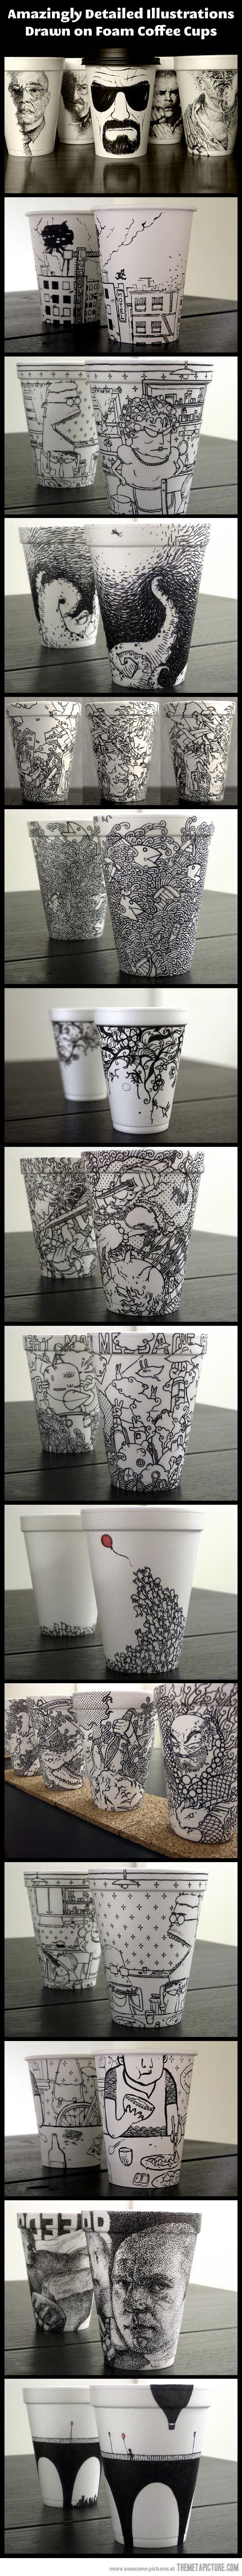 with the success of the illustrated #packaging yesterday sharing some awesome foam coffee cup #illustrations PD